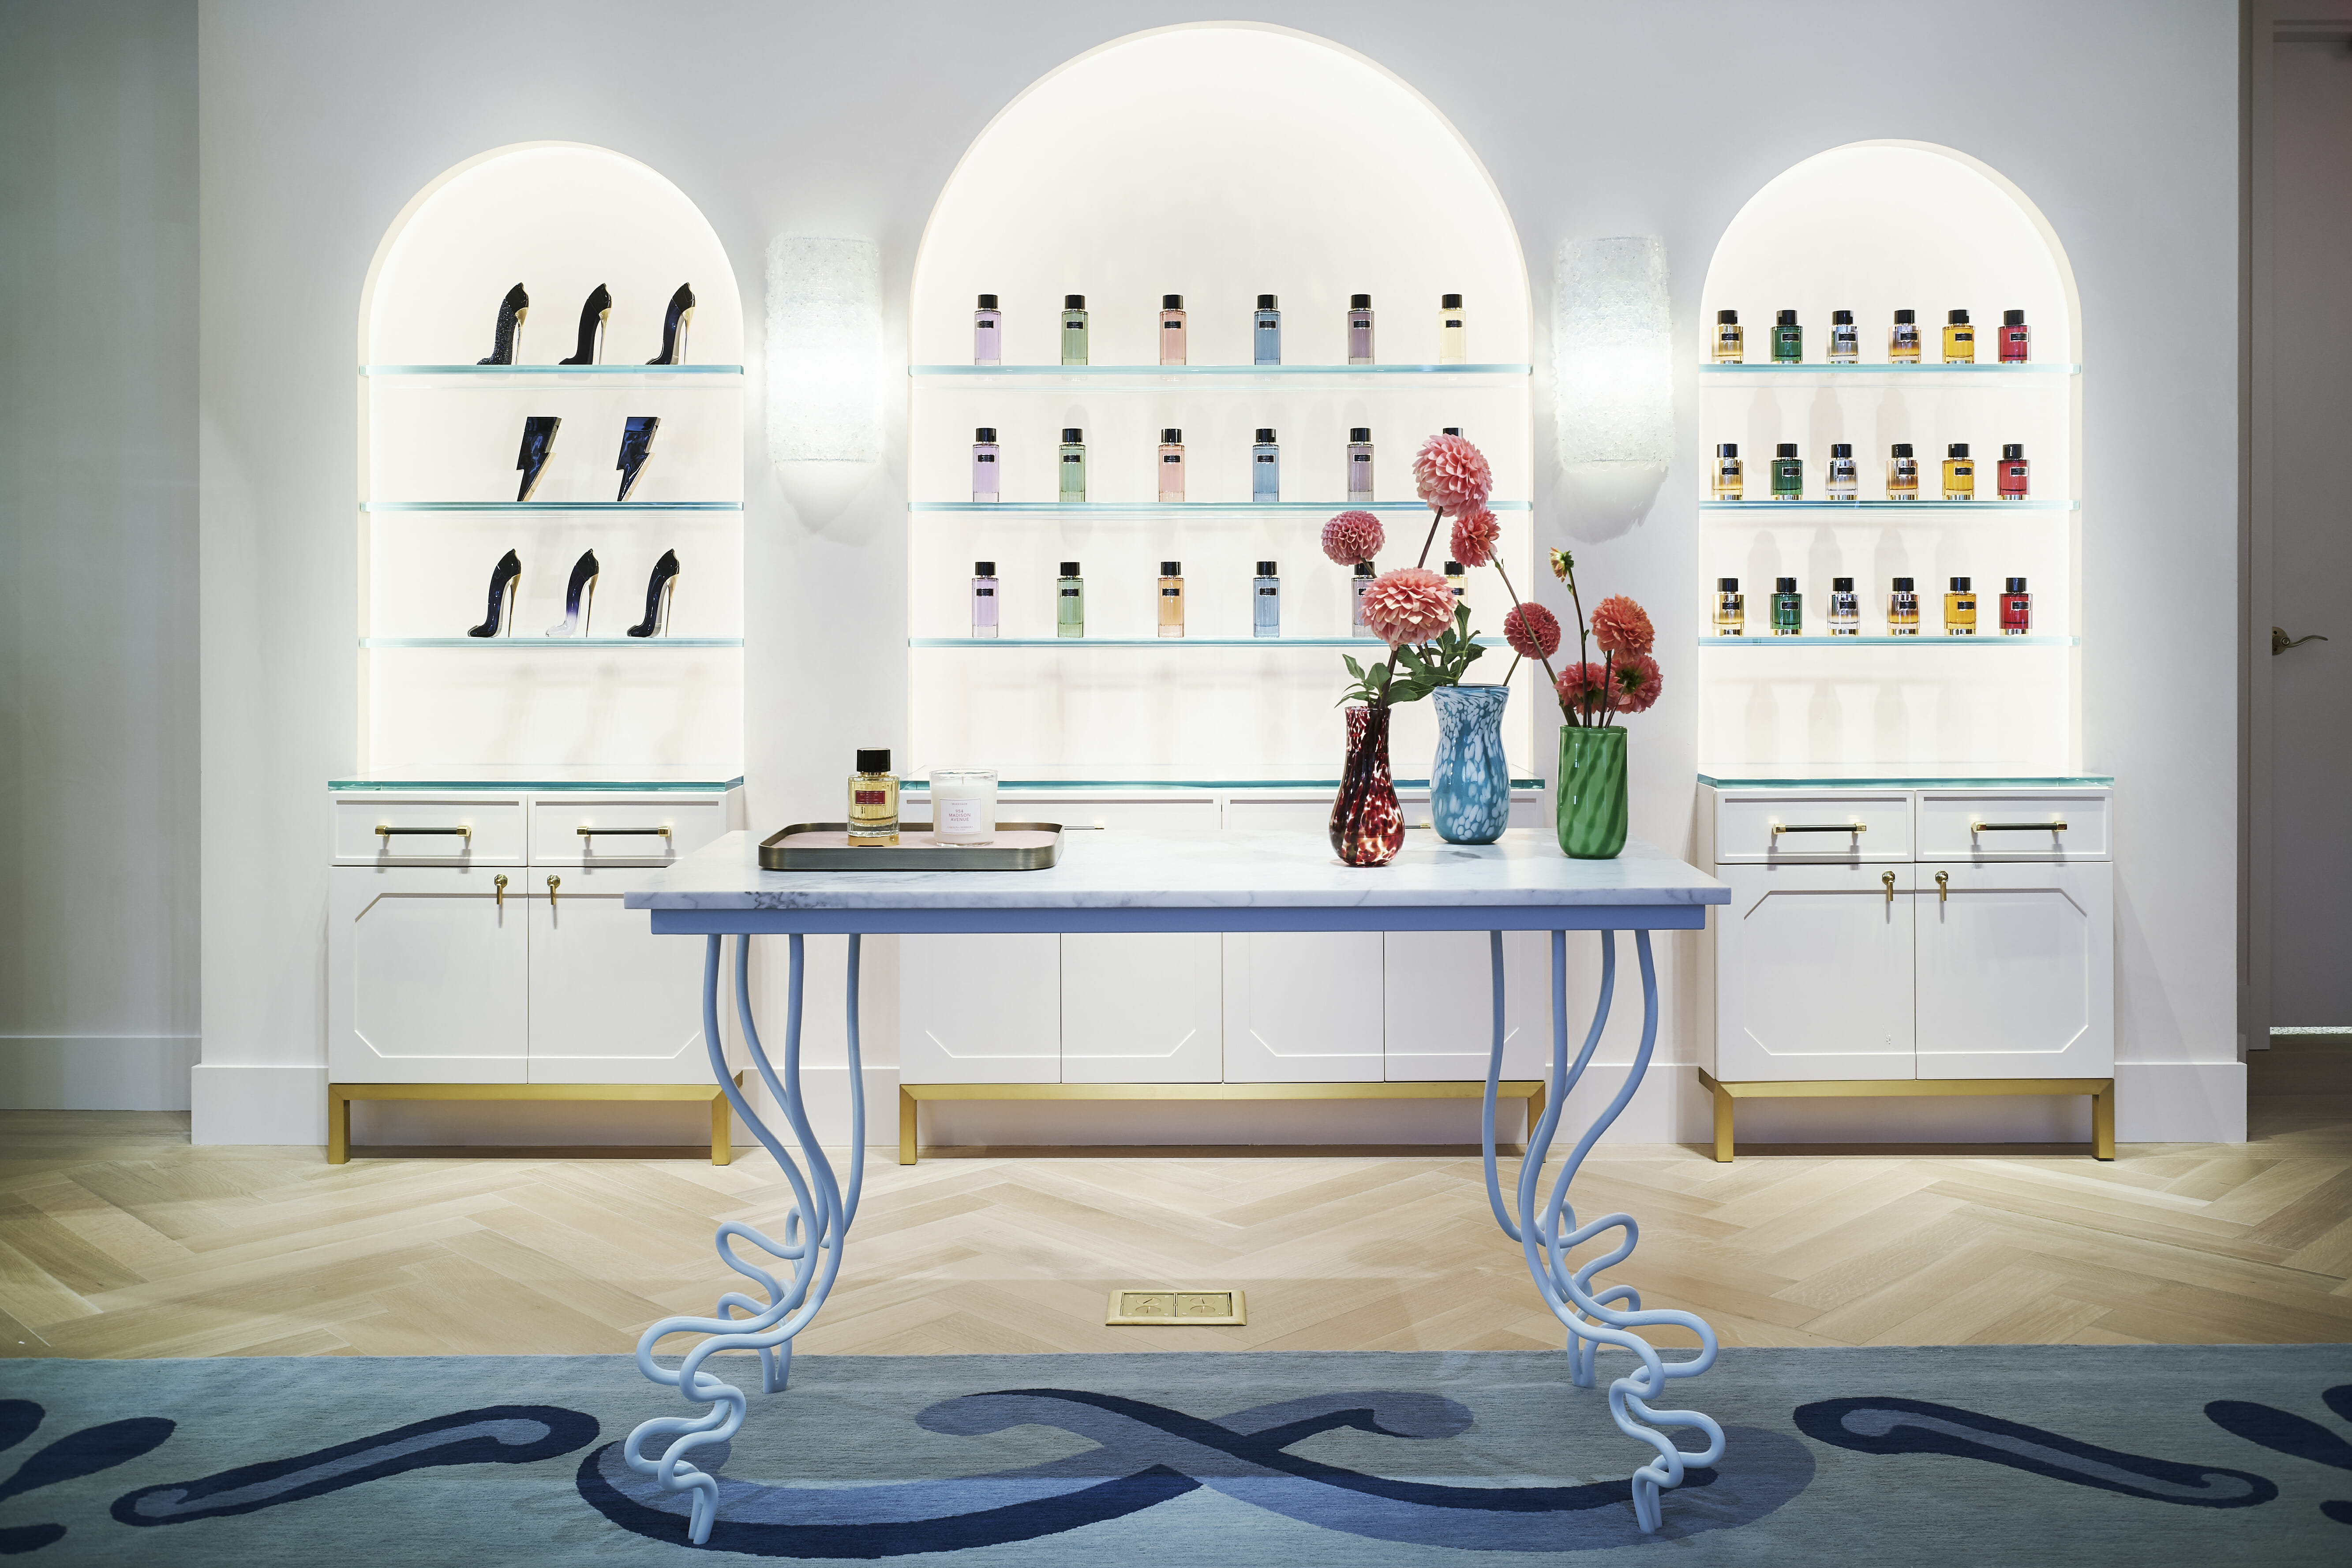 Carolina Herrera unveils its new store experience